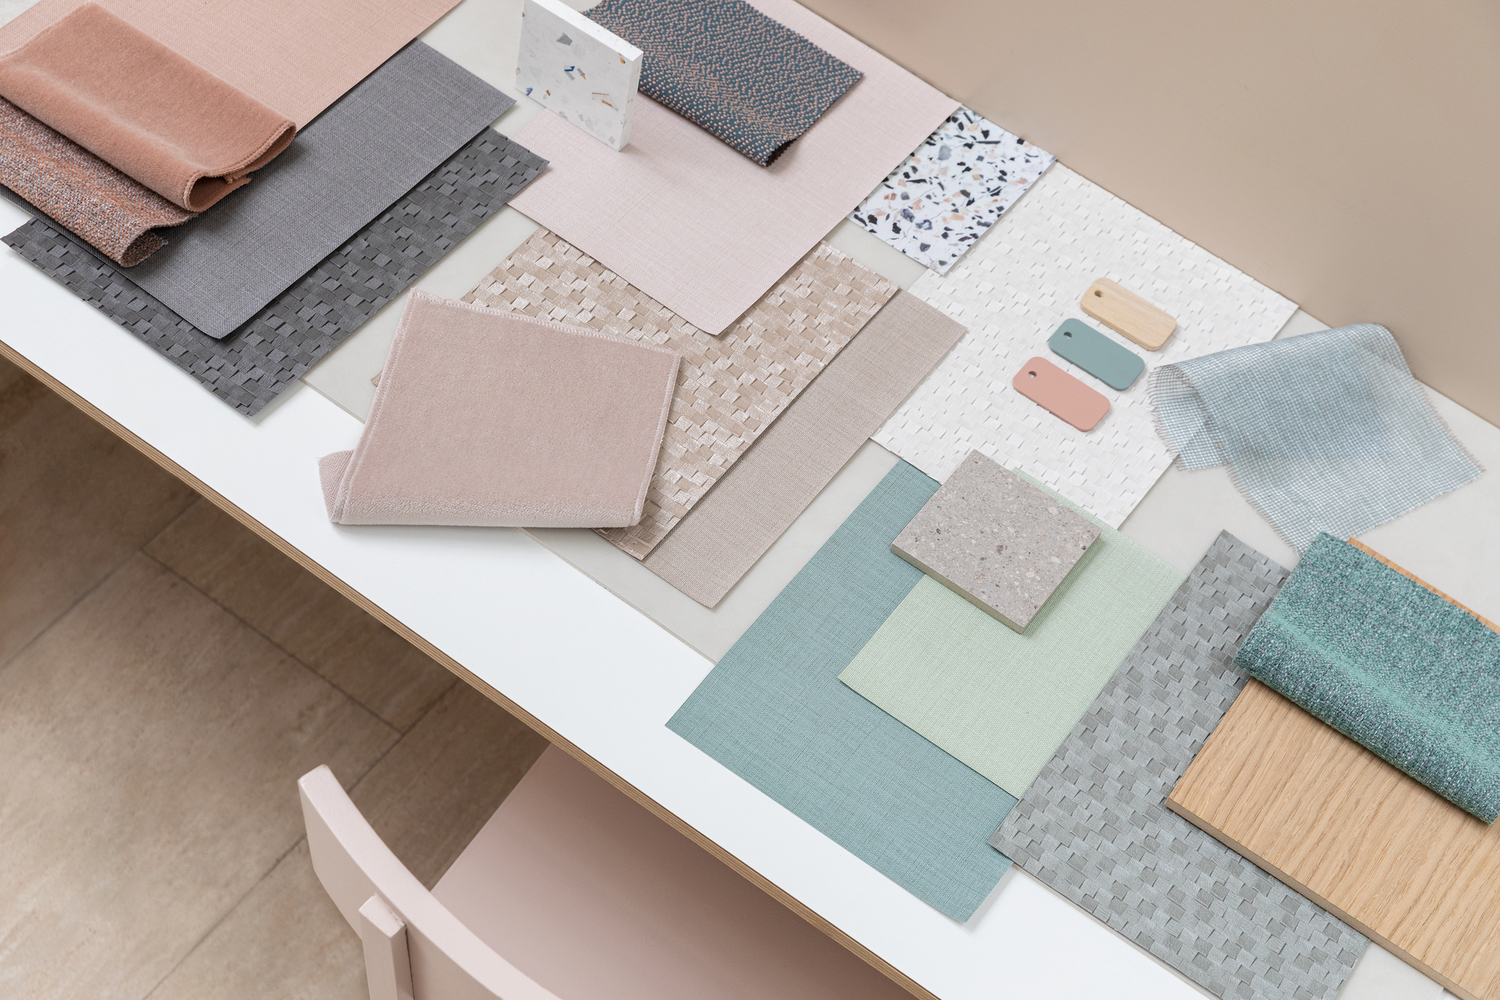 moodboard with various product samples